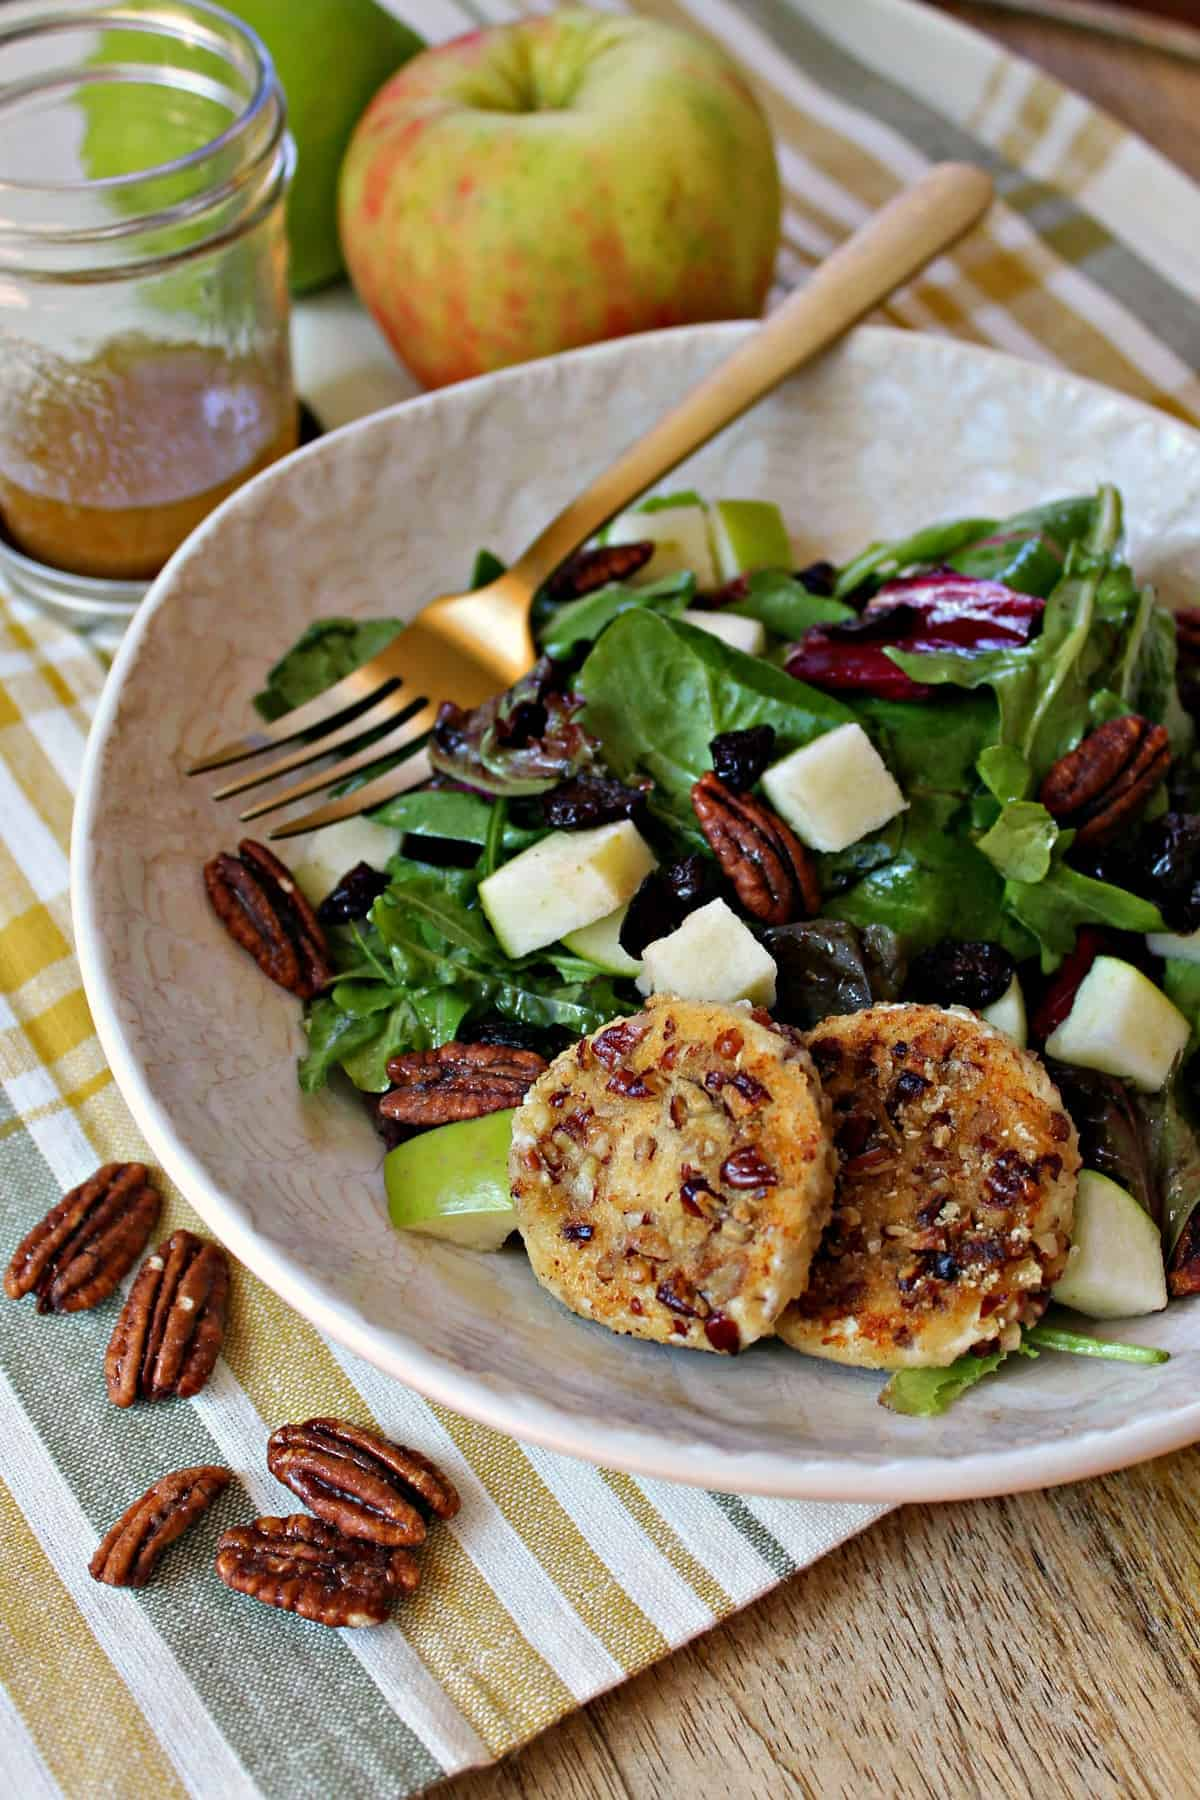 This fresh and crisp autumn harvest salad has apples, cranberries, and warm goat cheese in every bite